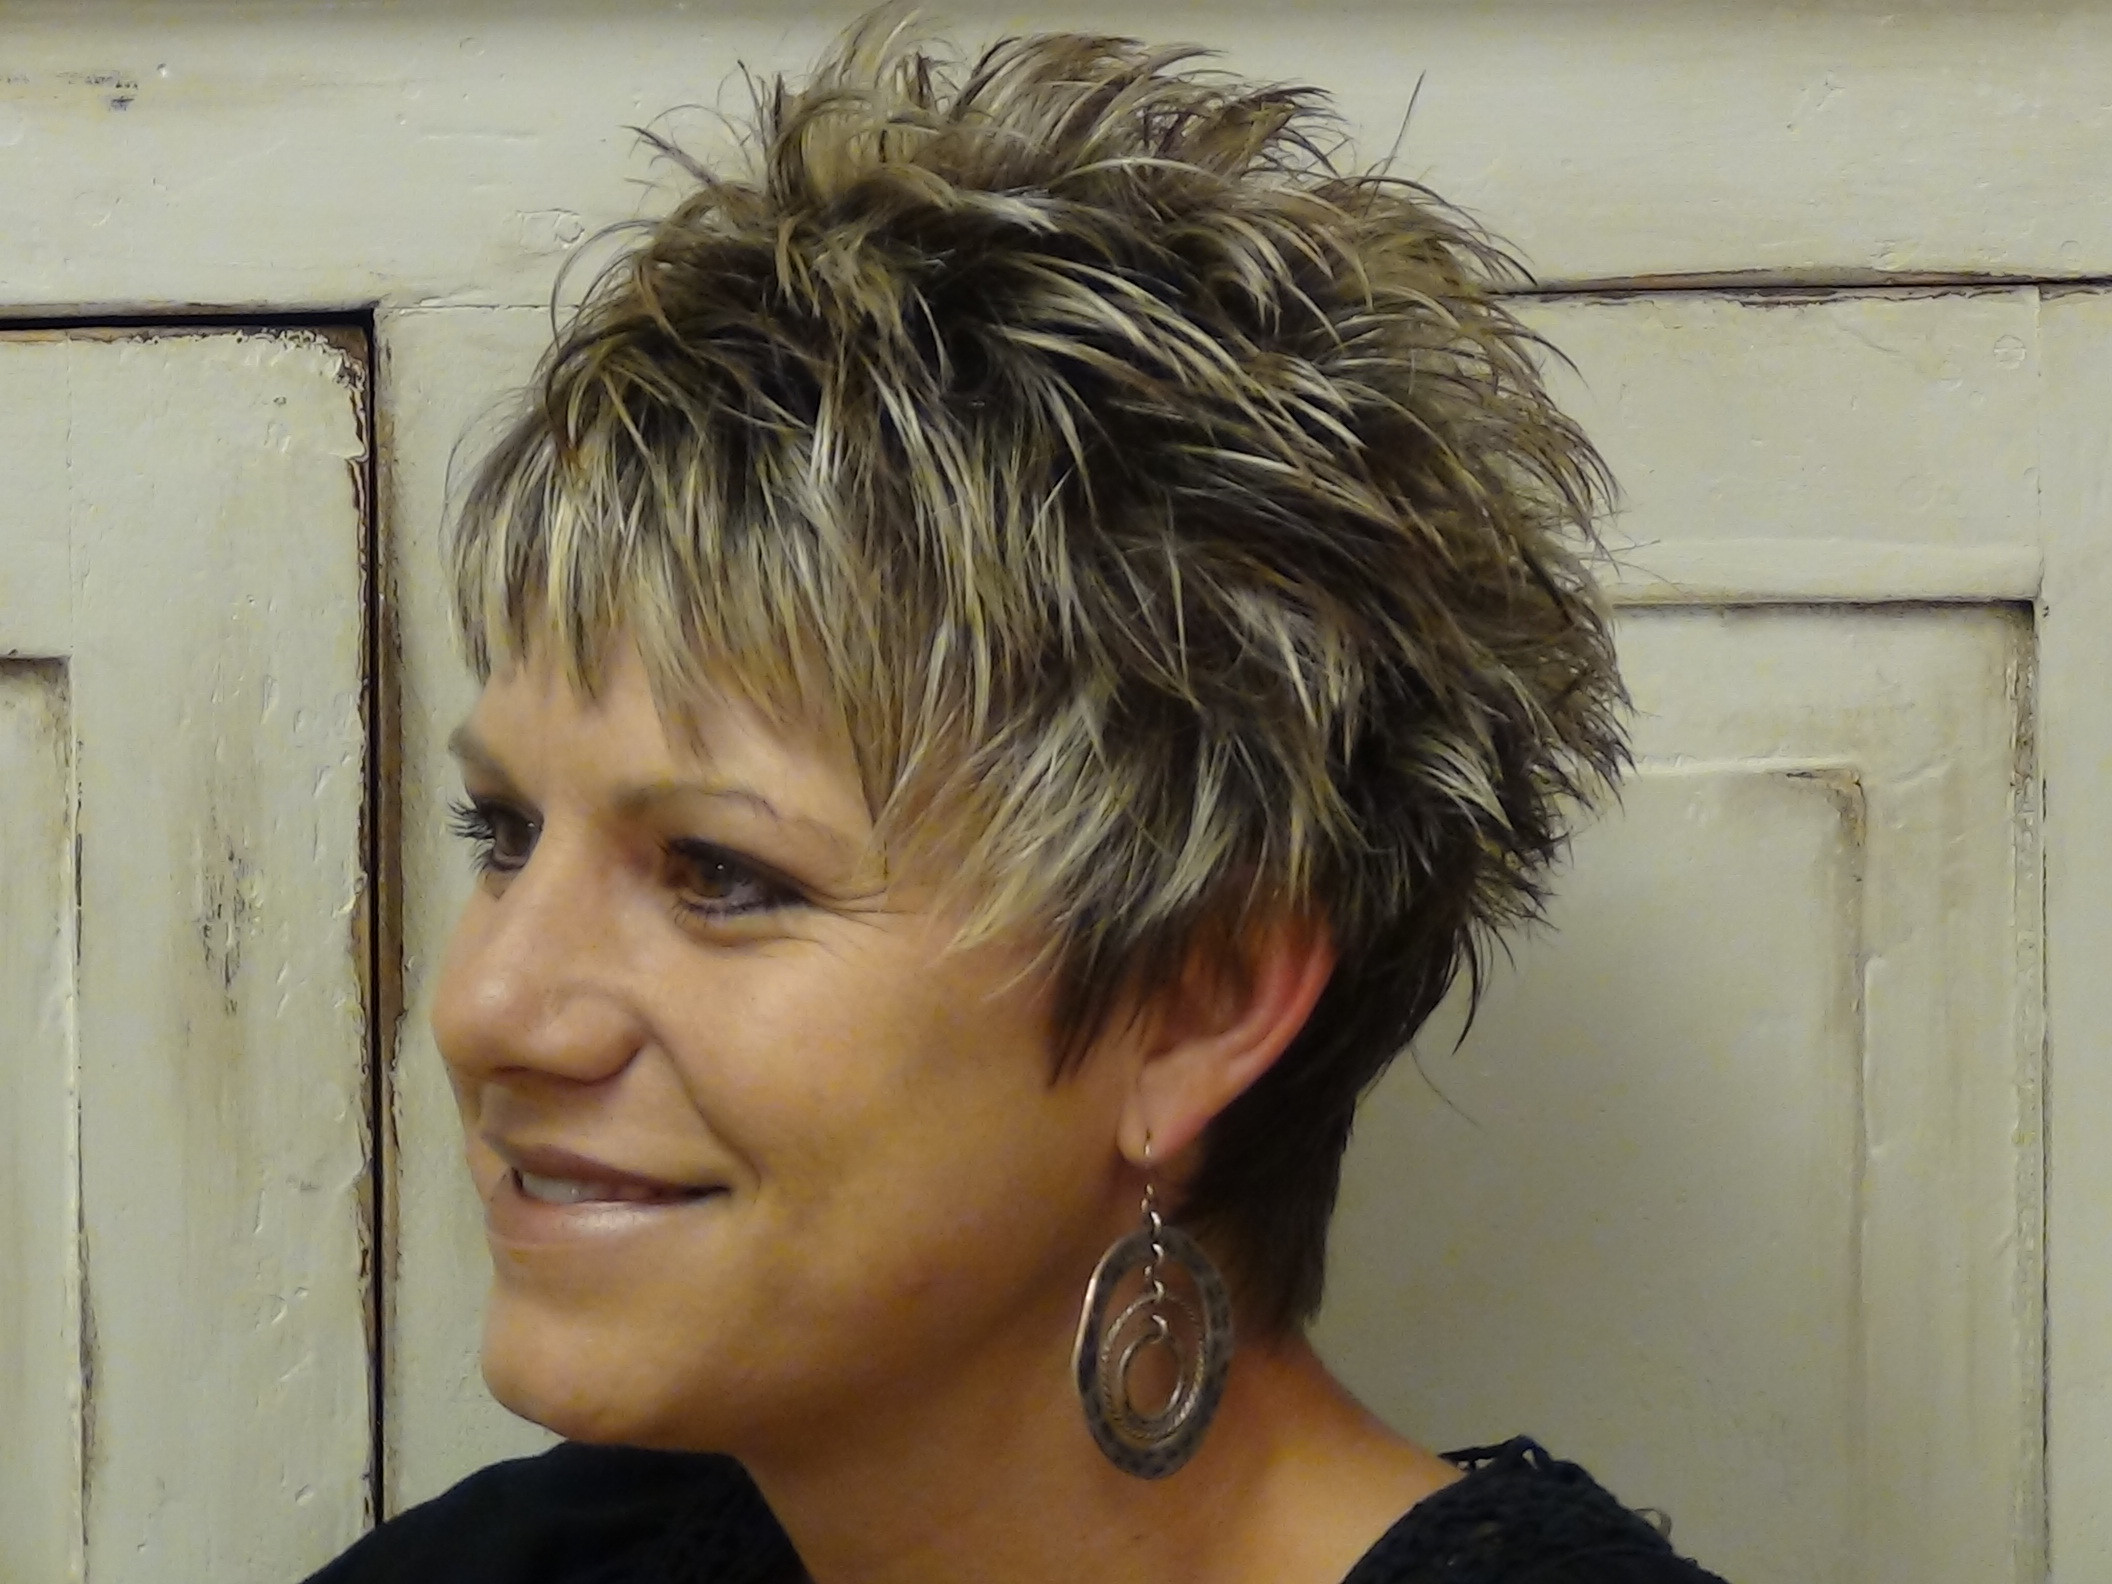 Best ideas about Cute Hairstyles For Women . Save or Pin Cute Hairstyles For Women Over 50 Fave HairStyles Now.